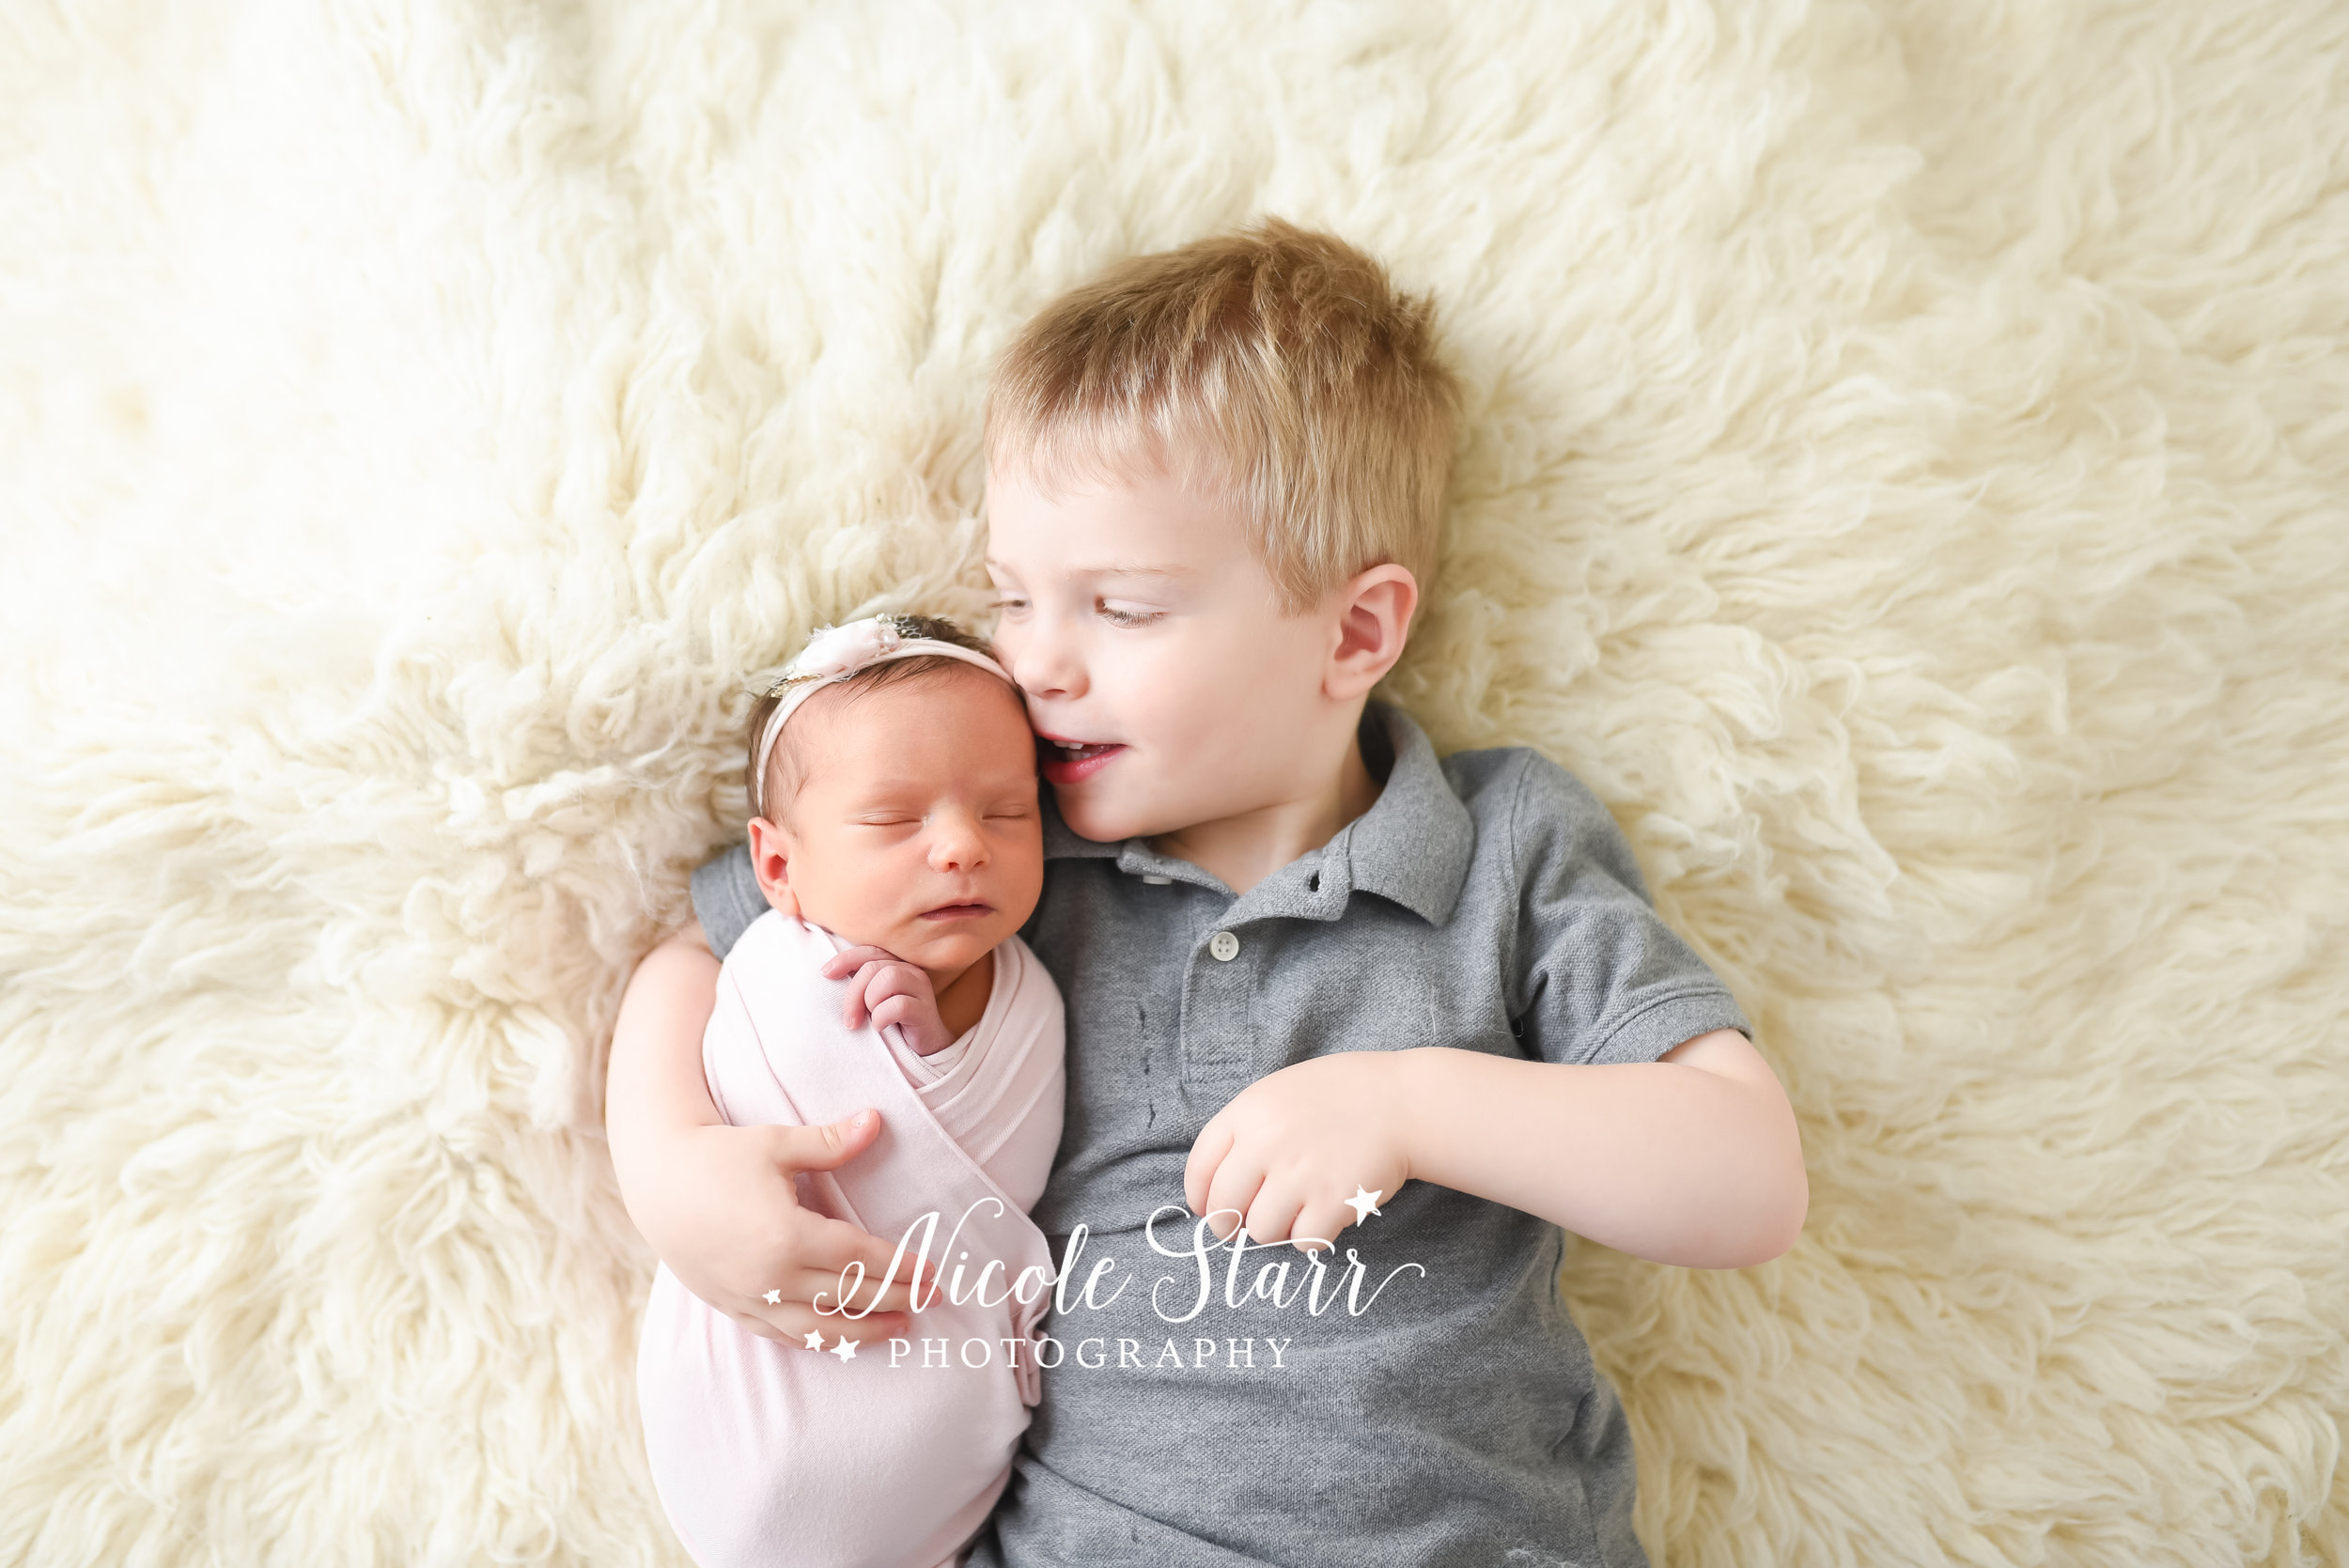 Nicole Starr Photography | Saratoga Springs Newborn Photographer | Boston Newborn Photographer | Upstate NY Newborn Photographer | Newborn Photographer | Delmar NY Newborn Photographer | Loudonville Newborn Photographer | studio newborn portraits, baby girl newborn portraits, Saratoga Springs newborn portraits in studio